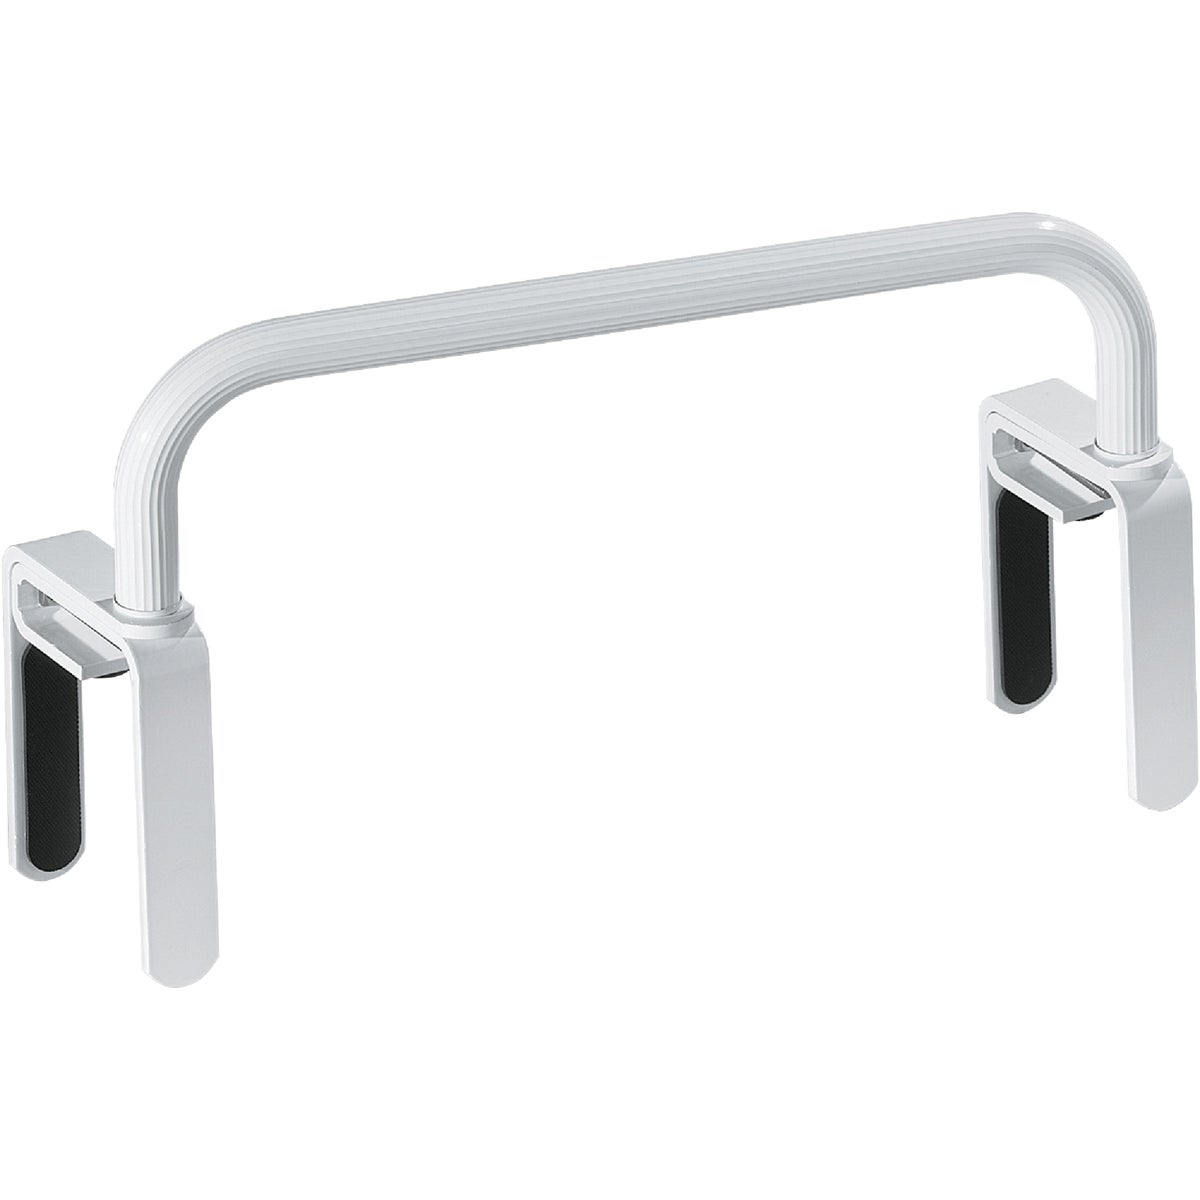 LOW PROFILE GRAB BAR